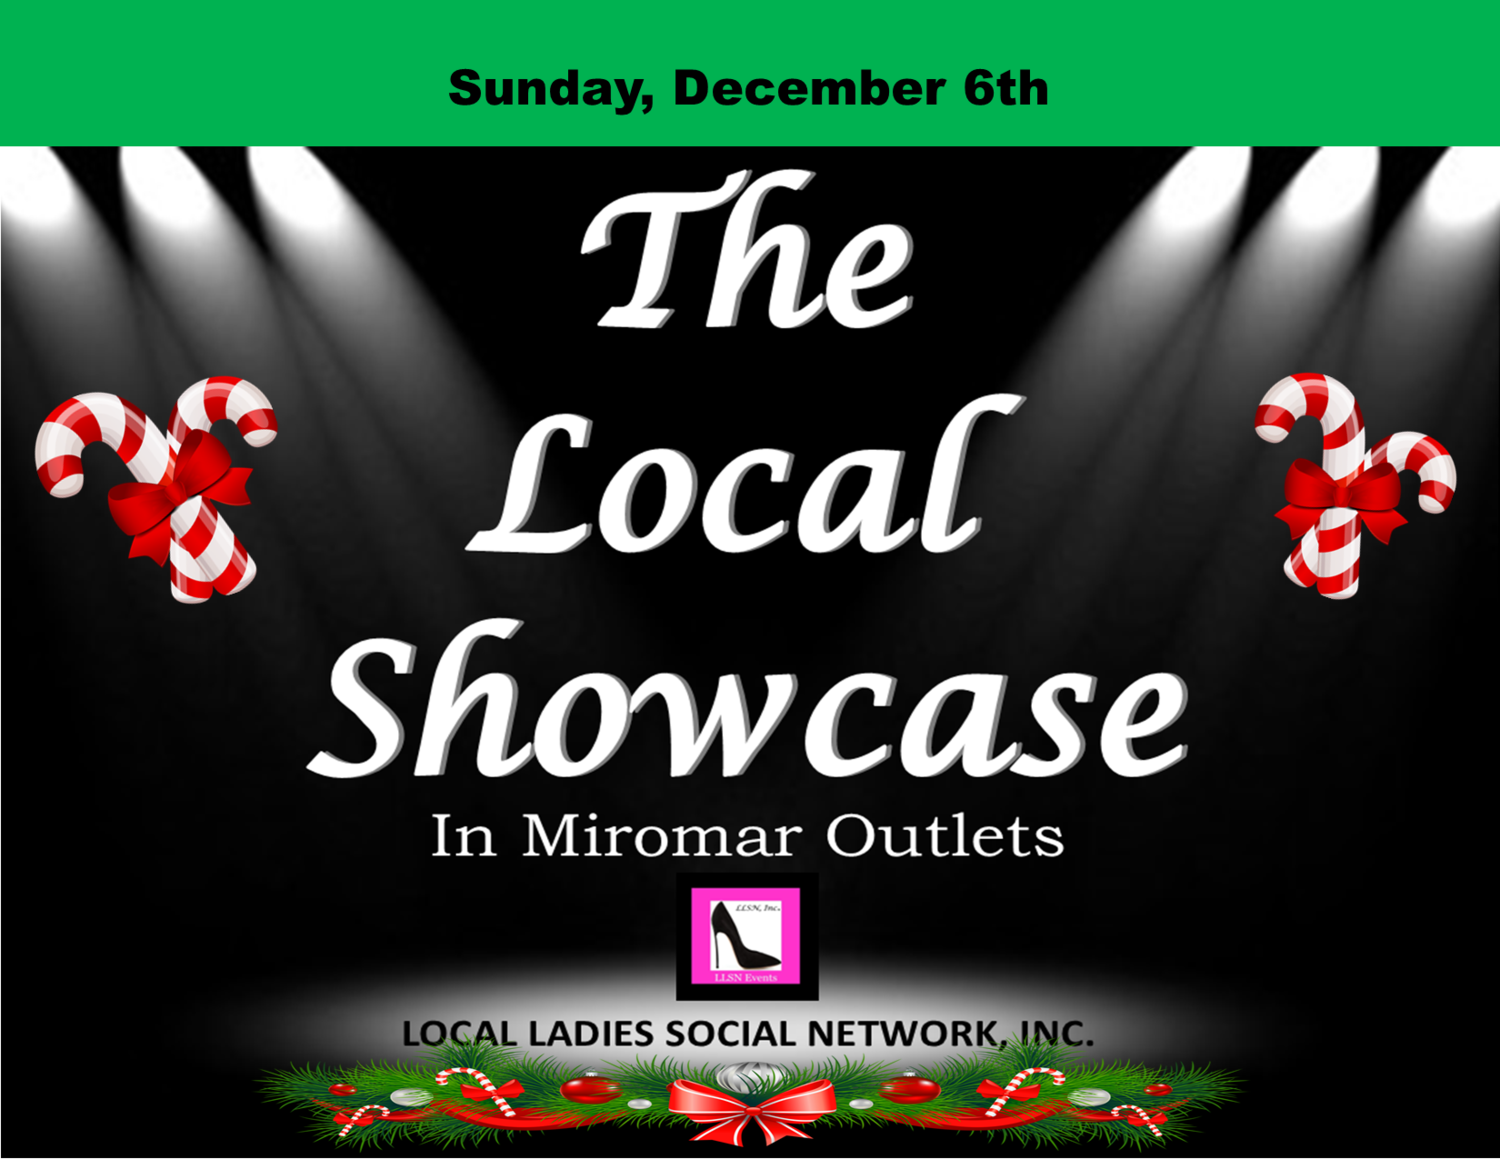 Sunday, December 6th 12pm-6pm